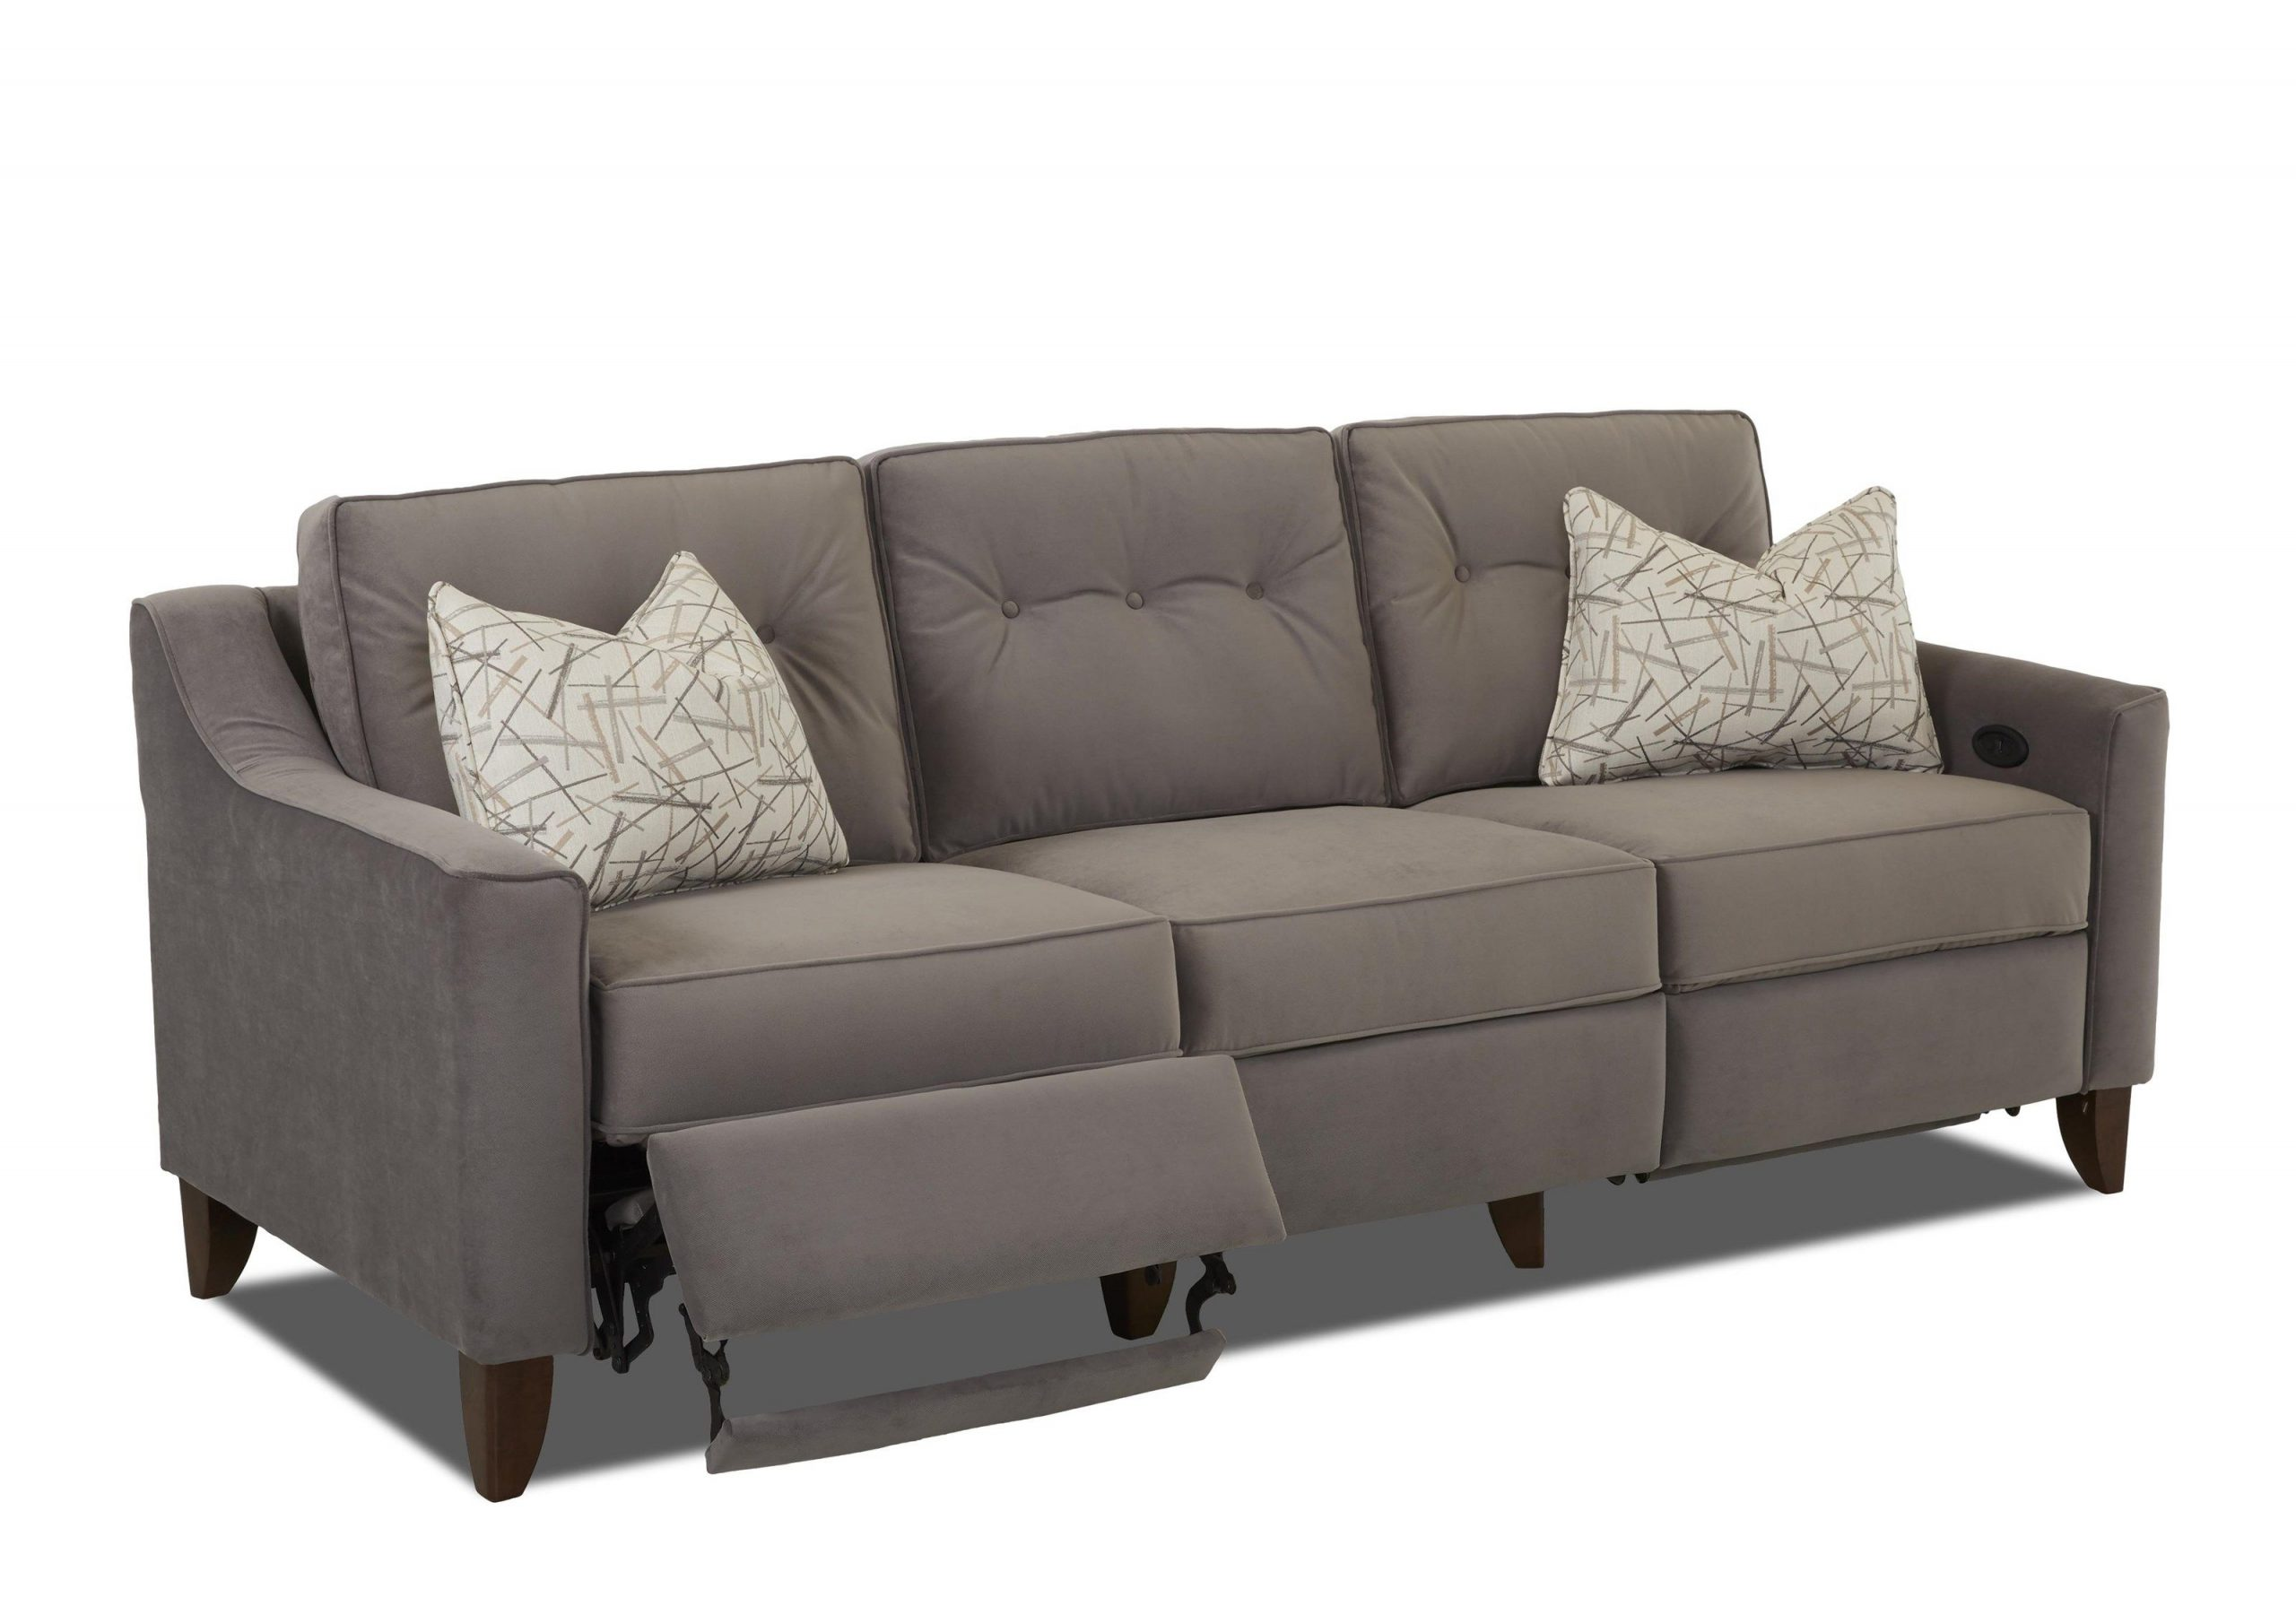 Furniture that make your home genial: reclining sofa with chaise lounge